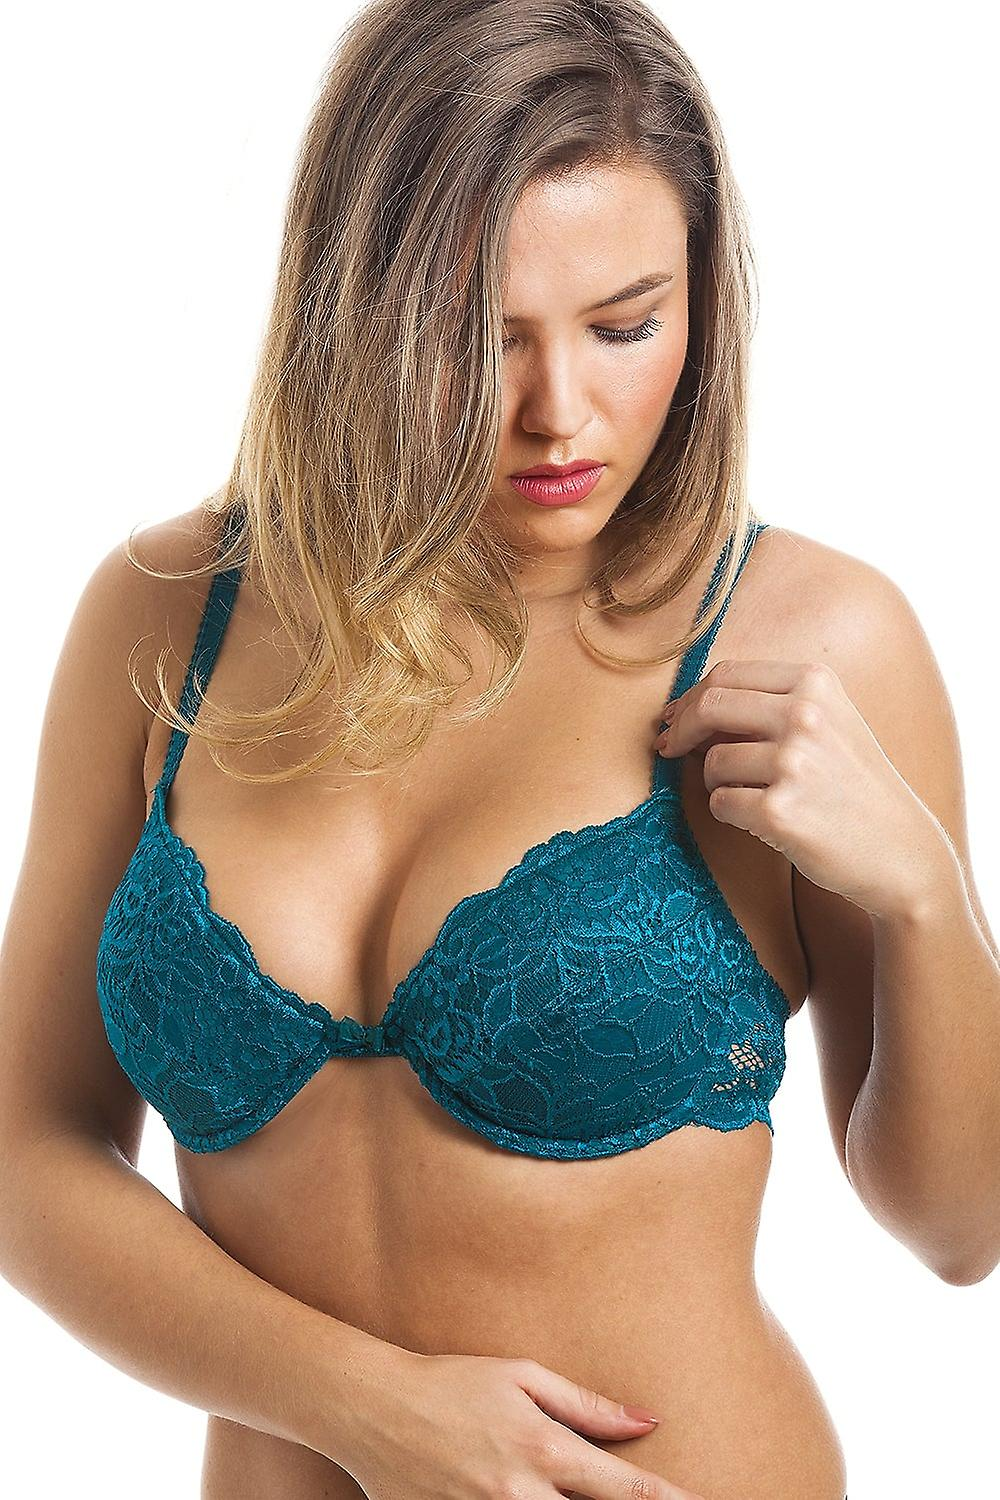 7b59c3e441 Camille Camille Womens Ladies Teal Push Up Plunge Padded Underwired Bra  Size 32A-40E